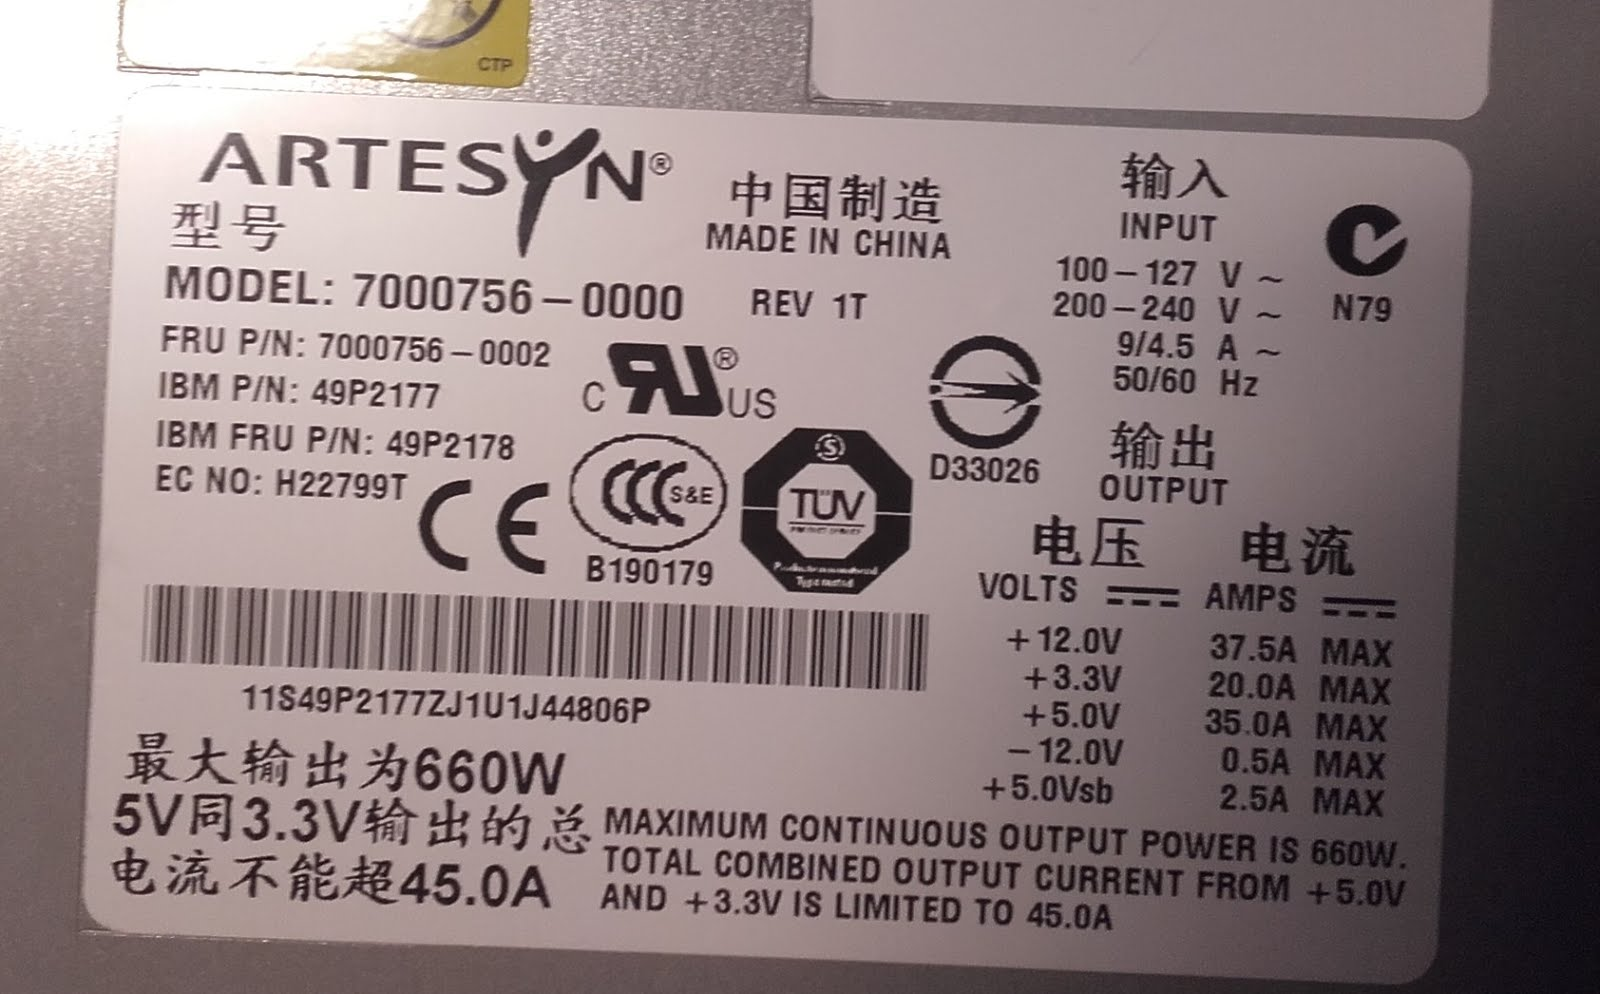 Mikkel Jeppesen: Figuring out the pinout of an ARTESYN 7000756-0000 psu